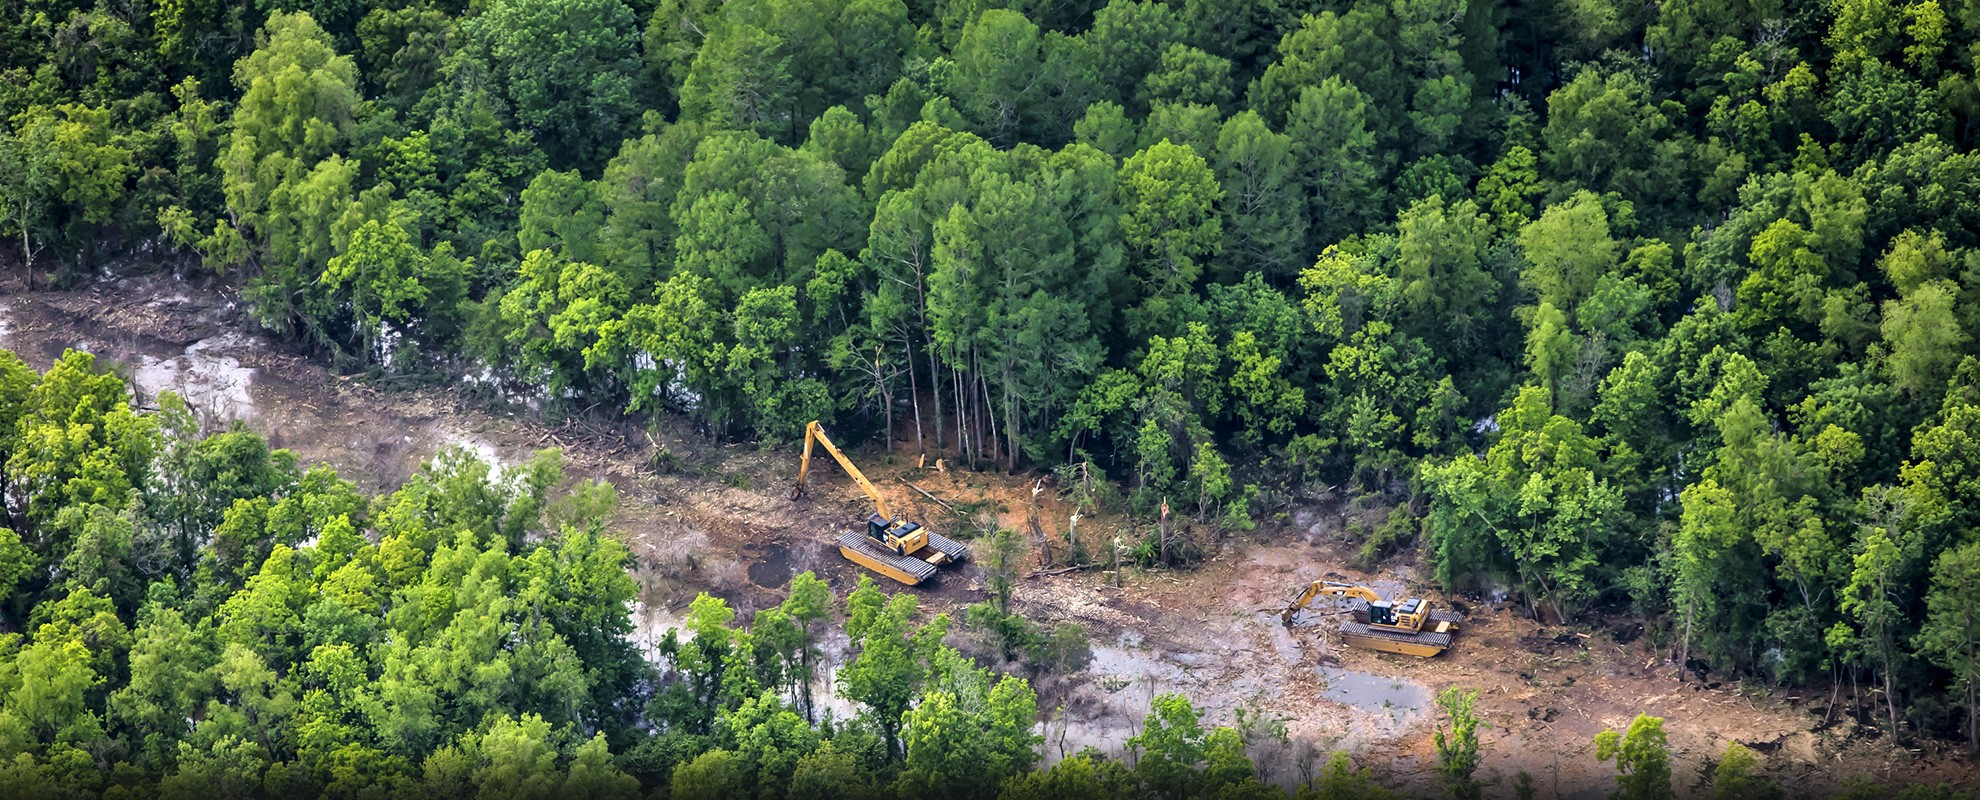 Ancient cypress tress are cleared in the Atchafalaya Basin for the Bayou Bridge pipeline.